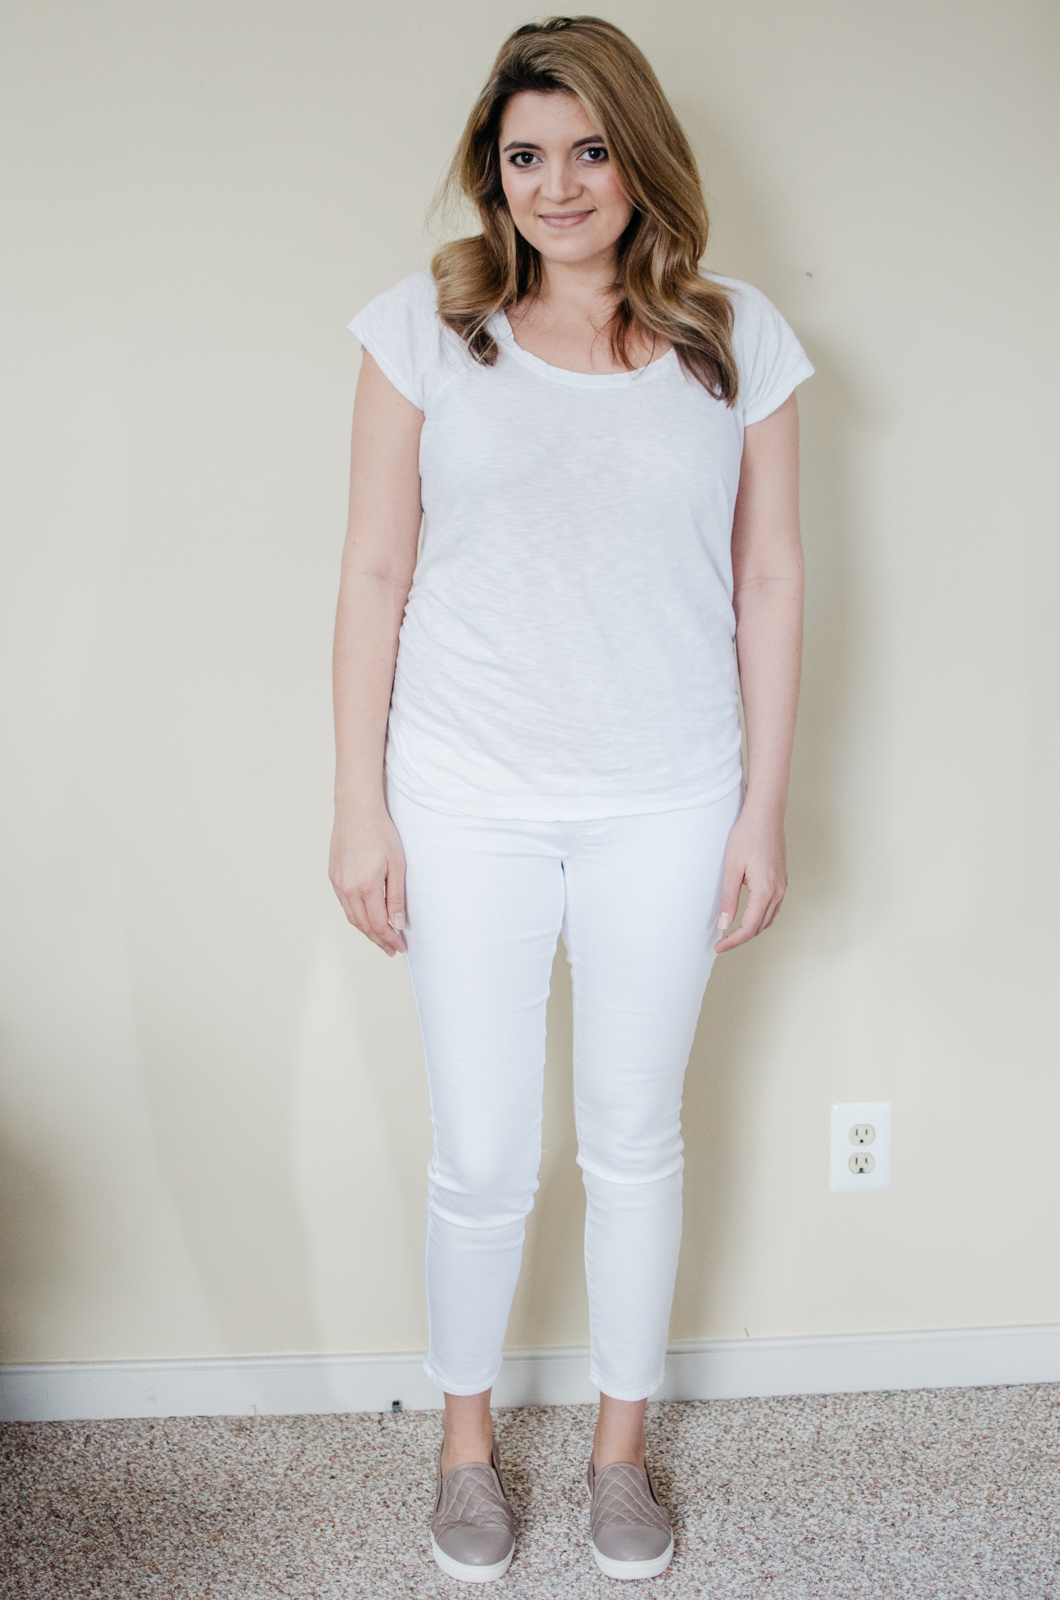 LED Luxe Essentials maternity jeans review | See reviews of over 15 maternity jeans brands by clicking through to this post! | bylaurenm.com